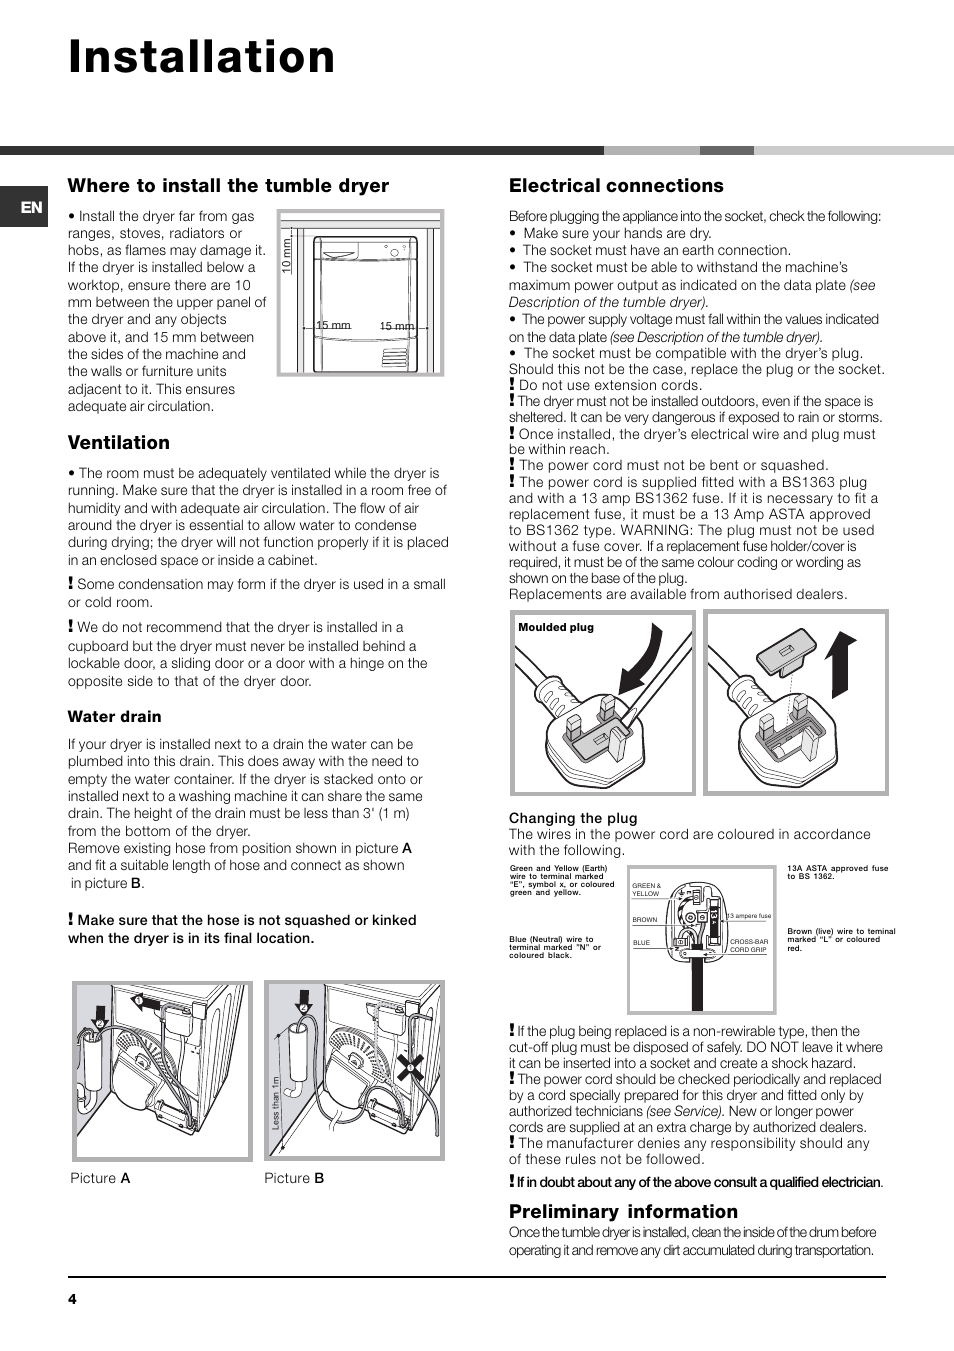 Indesit Refrigerator Wiring Diagram : Installation where to install the tumble dryer ventilation